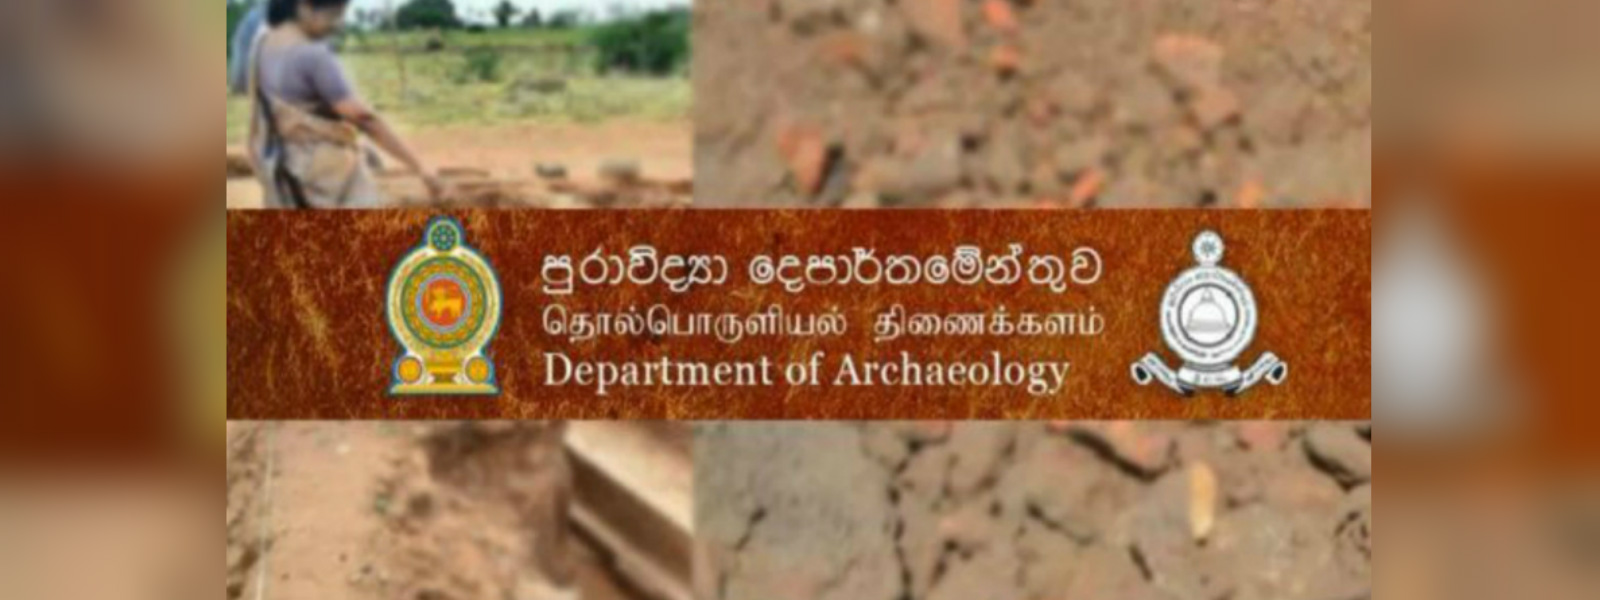 Dr. Senarath Dissnayake reappointed as Archeology Director-General